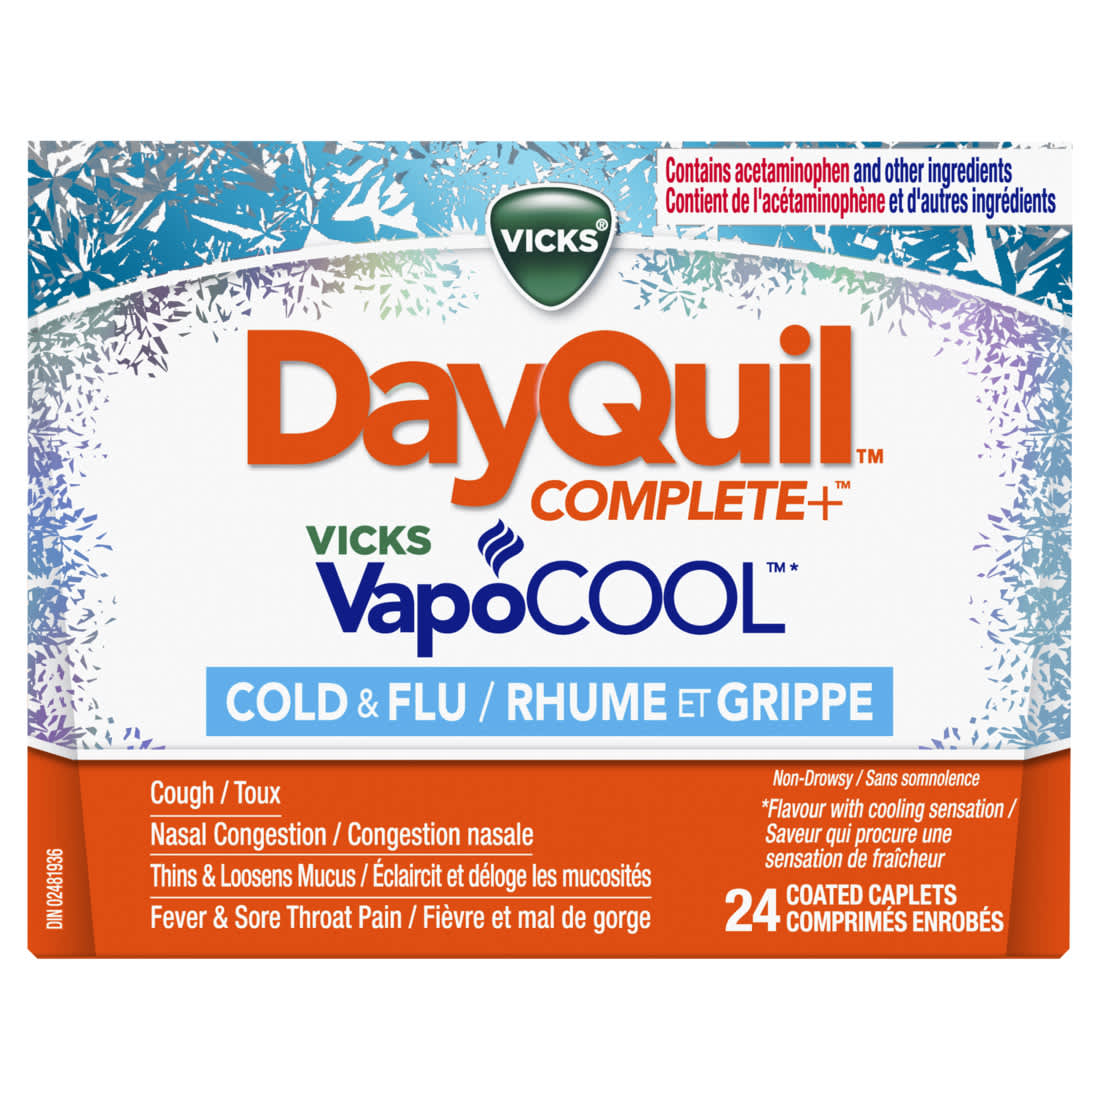 dayquil-complete-vicks-vapocool-tm-daytime-cough-cold-and-flu-relief-liquid